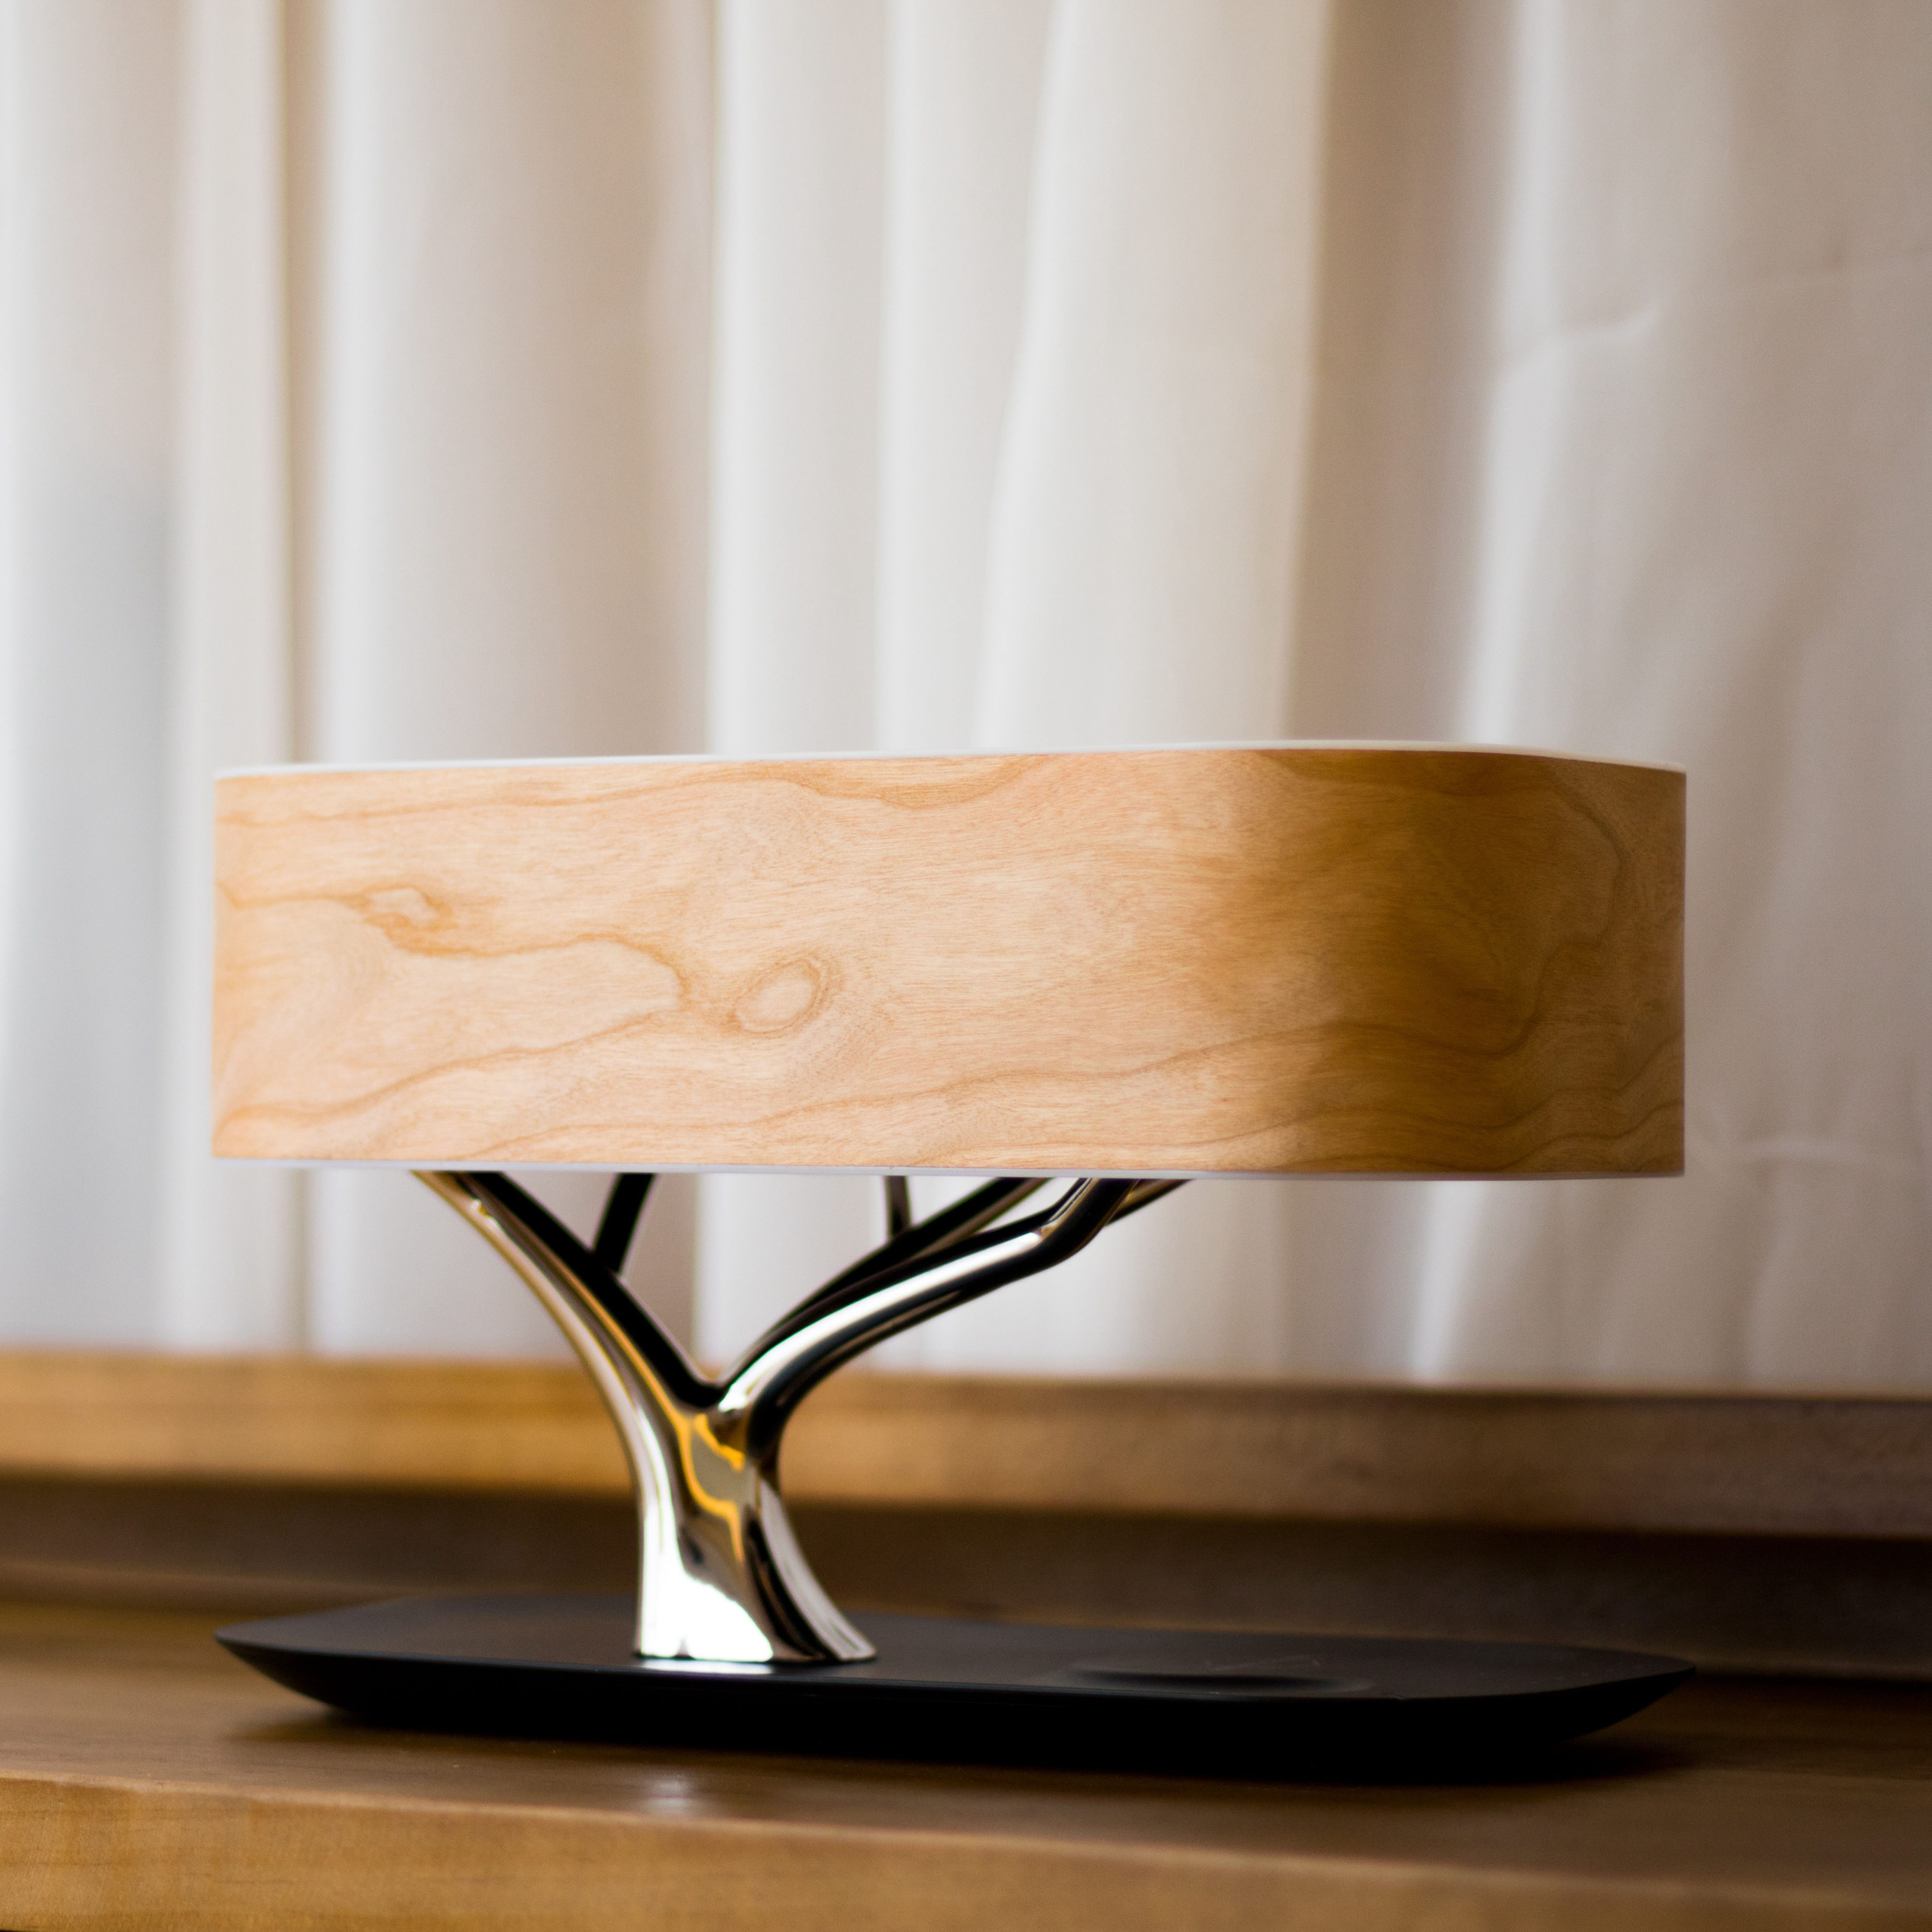 Bedside Table Lamp Bluetooth Speaker and Wireless Charger Sleep Mode Stepless Dimming Tree Light Wireless Charging Desk Lamp